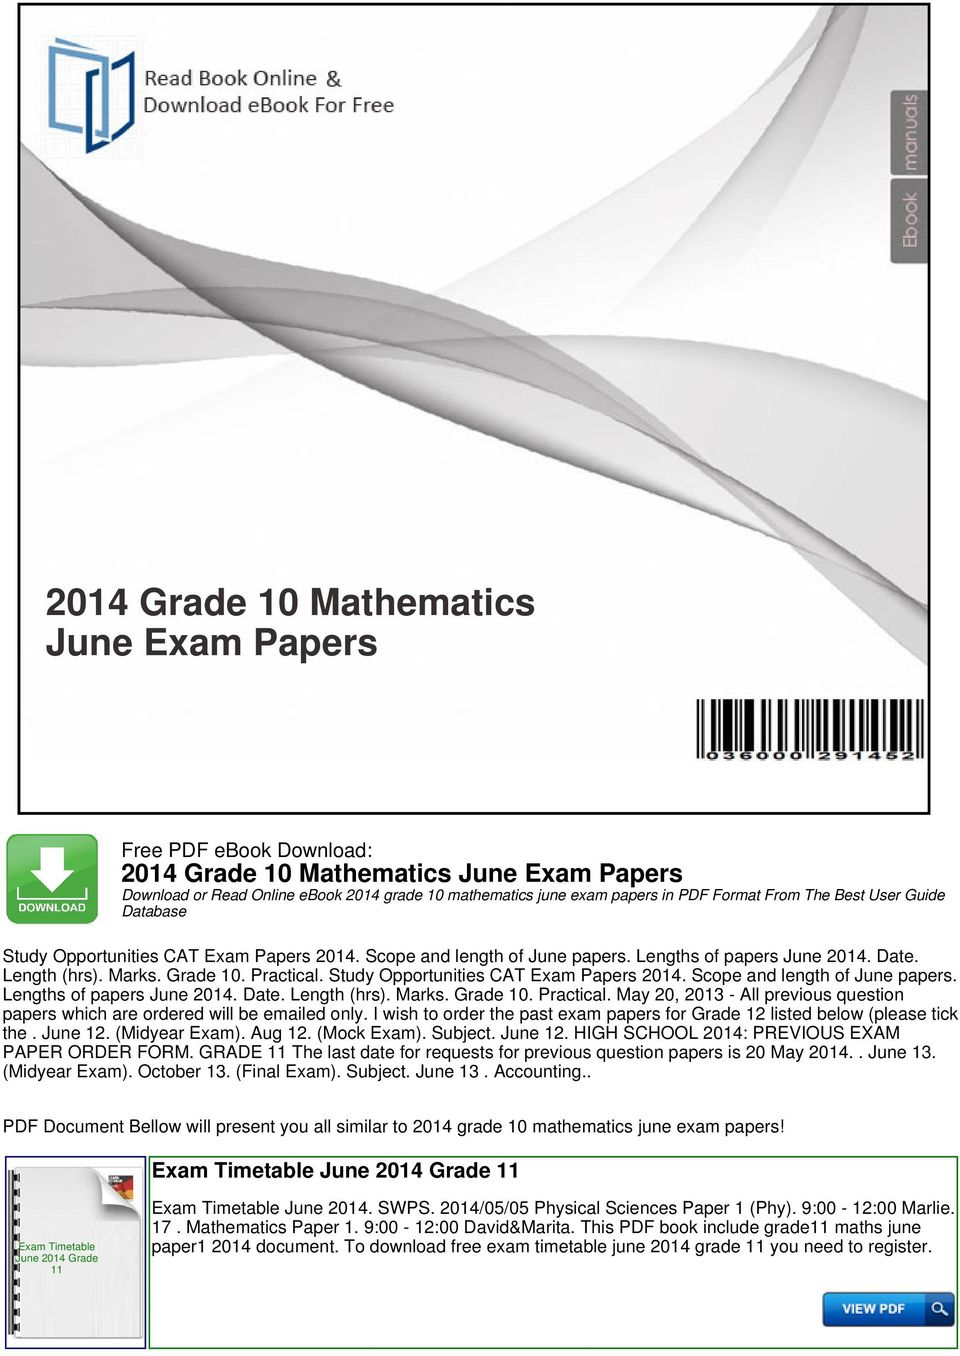 2014 grade 10 mathematics june exam papers pdf study opportunities cat exam papers 2014 scope and length of june papers lengths of fandeluxe Images